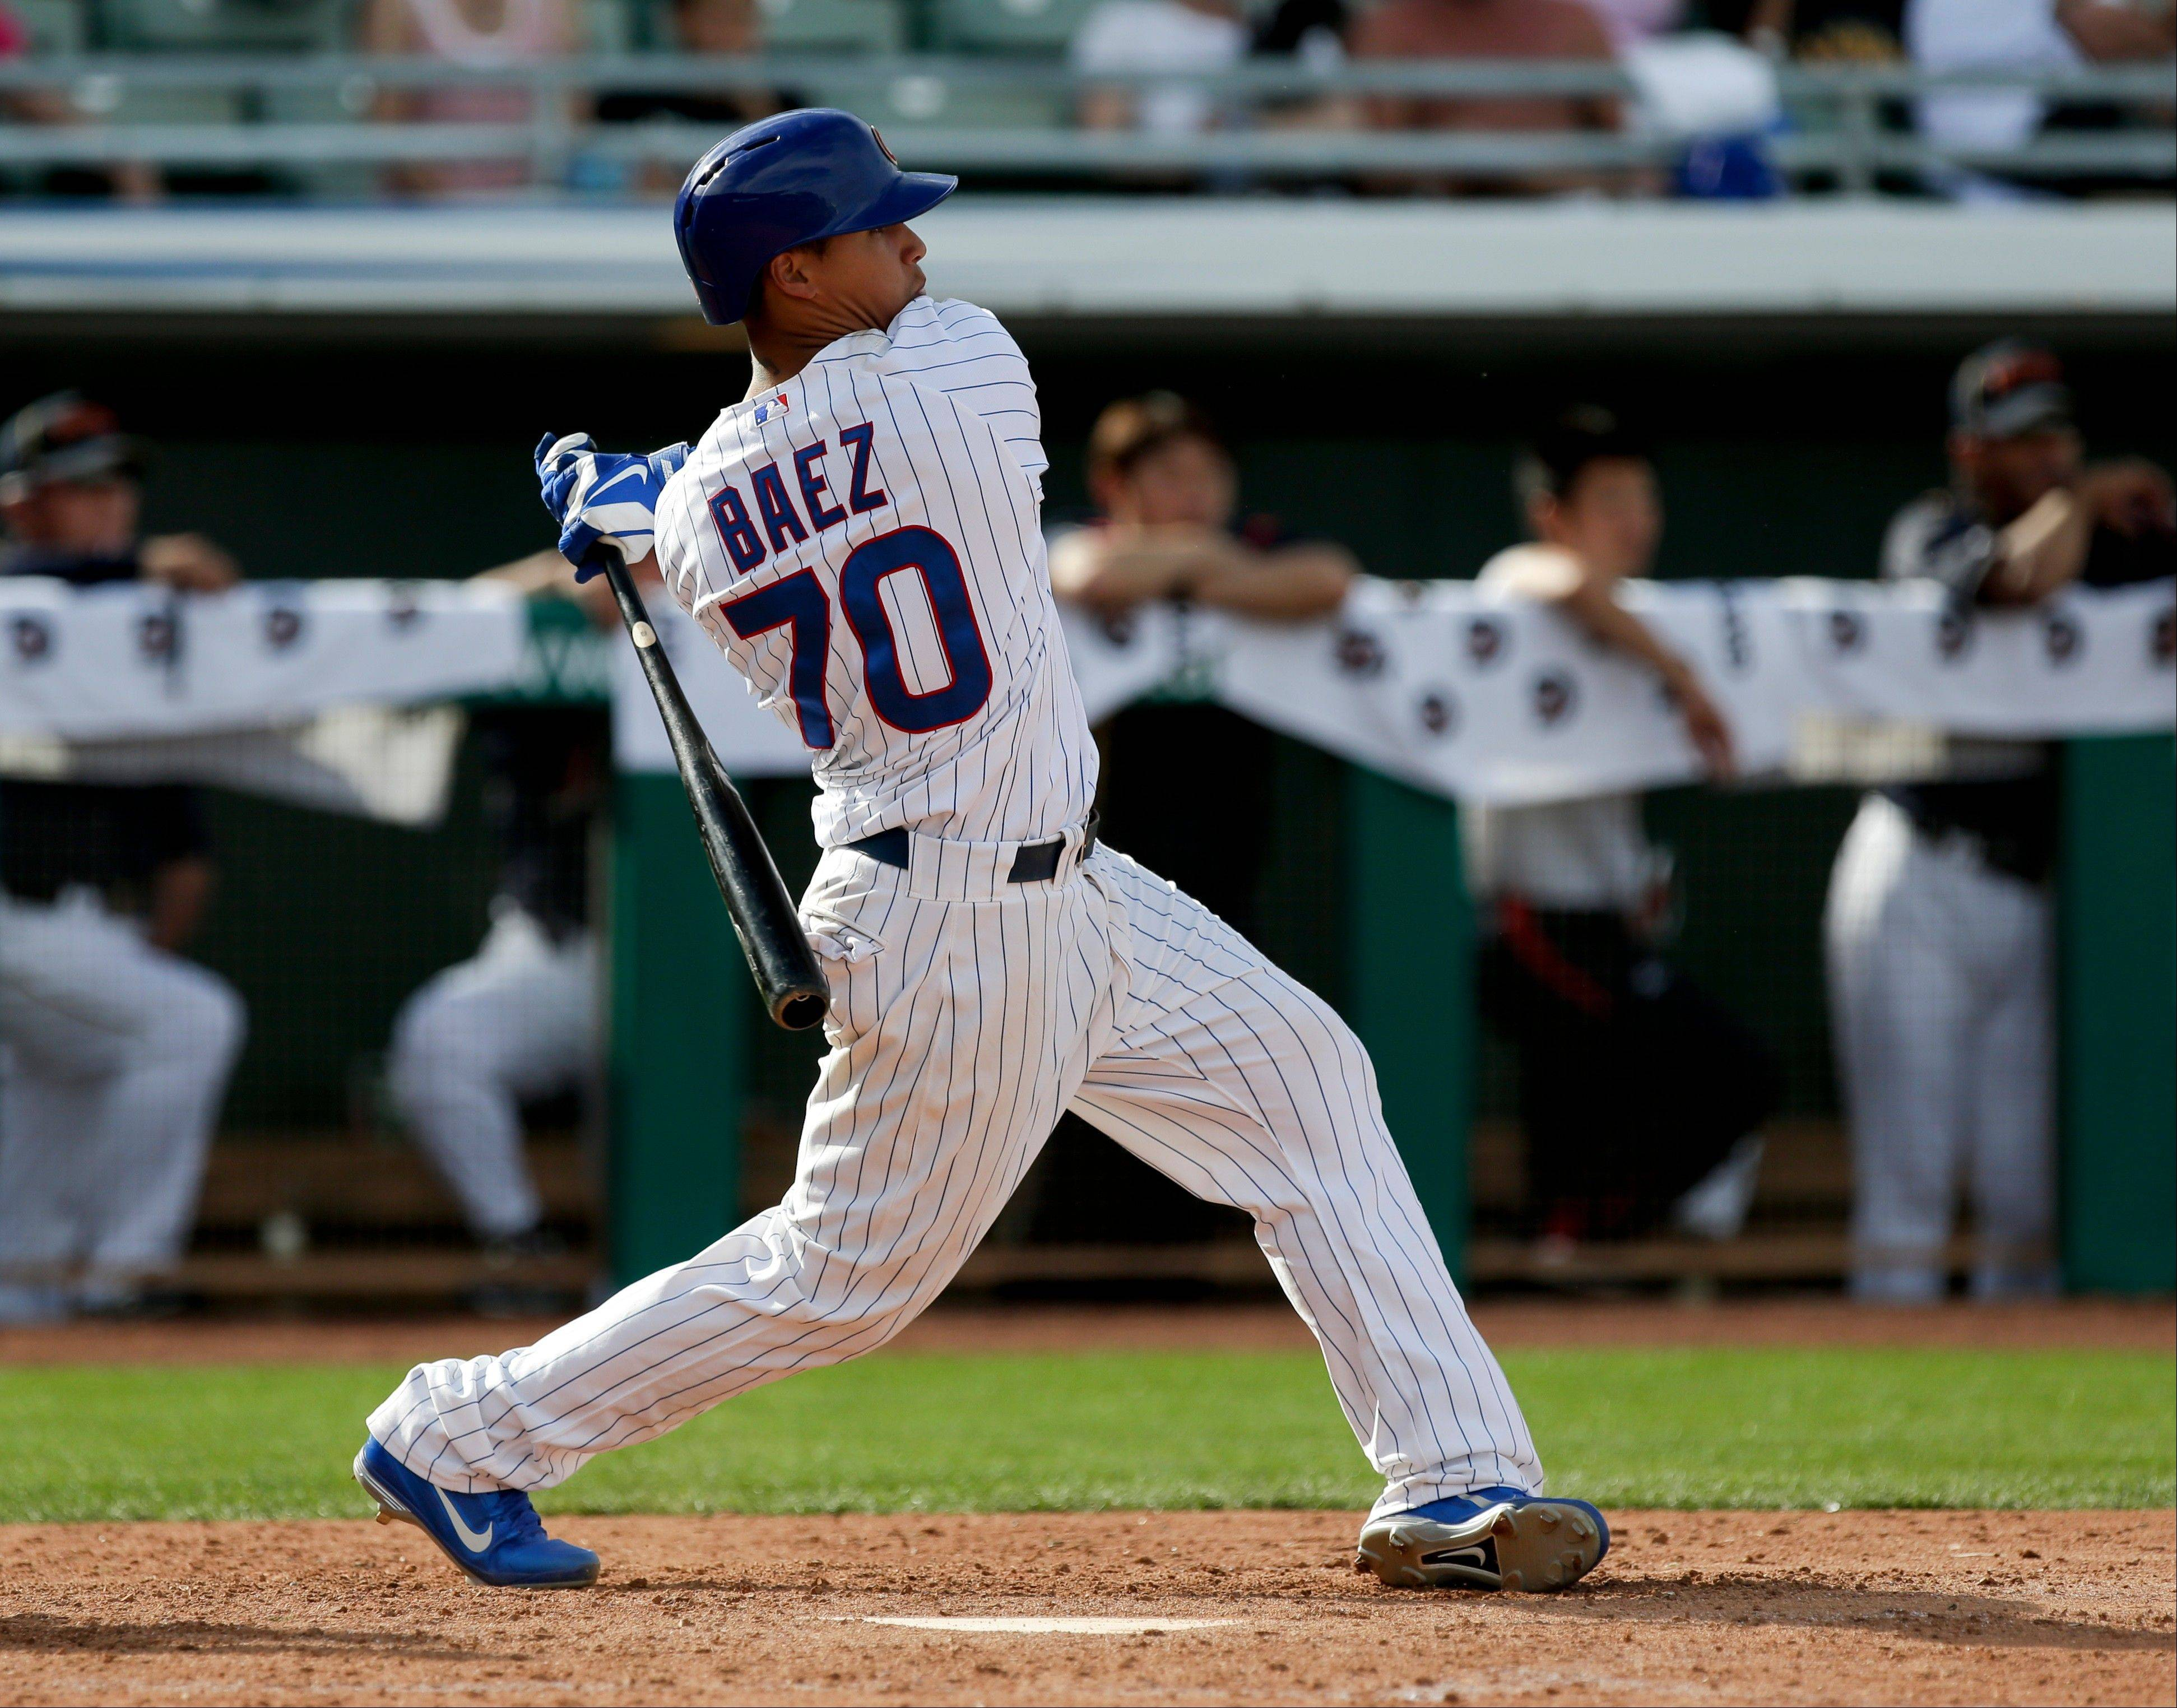 Chicago Cubs' Javier Baez watches his walk off two-run home run against Japan during the bottom the ninth inning of an exhibition spring training baseball game in Mesa, Ariz. Friday, March 15, 2013. (AP Photo/Chris Carlson)